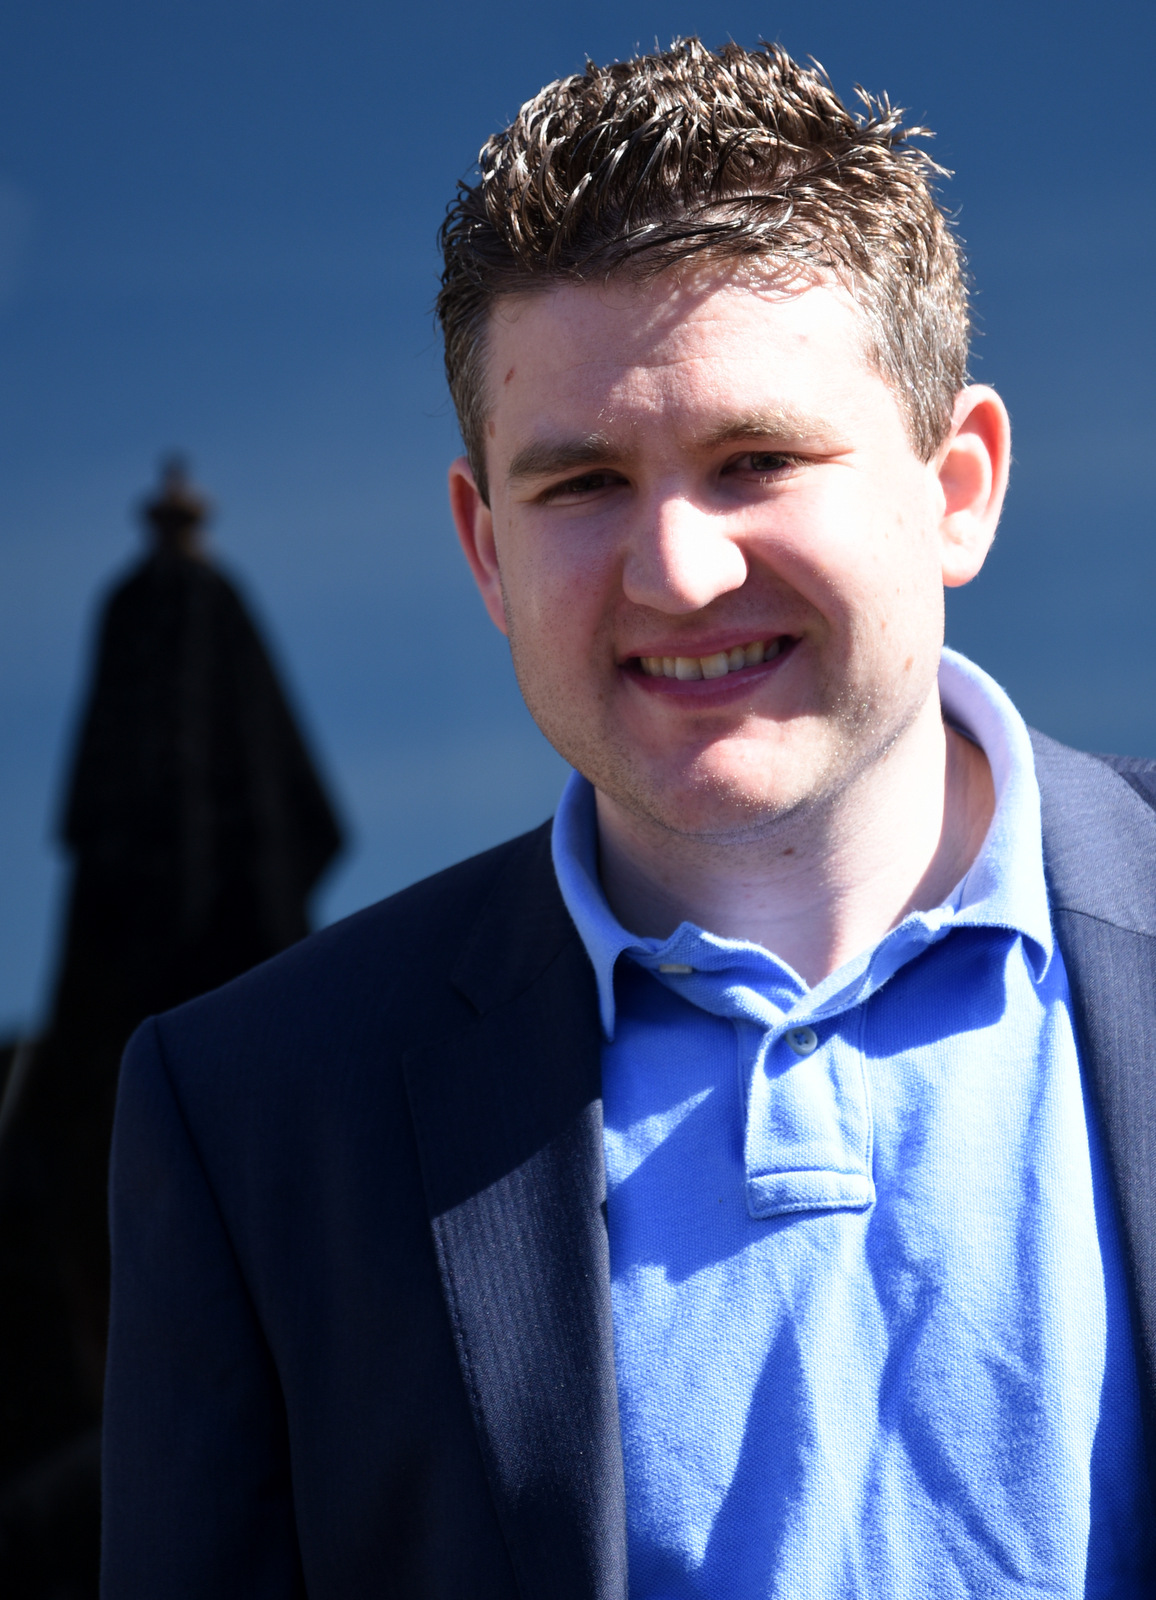 Local businessman and army reservist selected to fight Swansea West for the Liberal Democrats